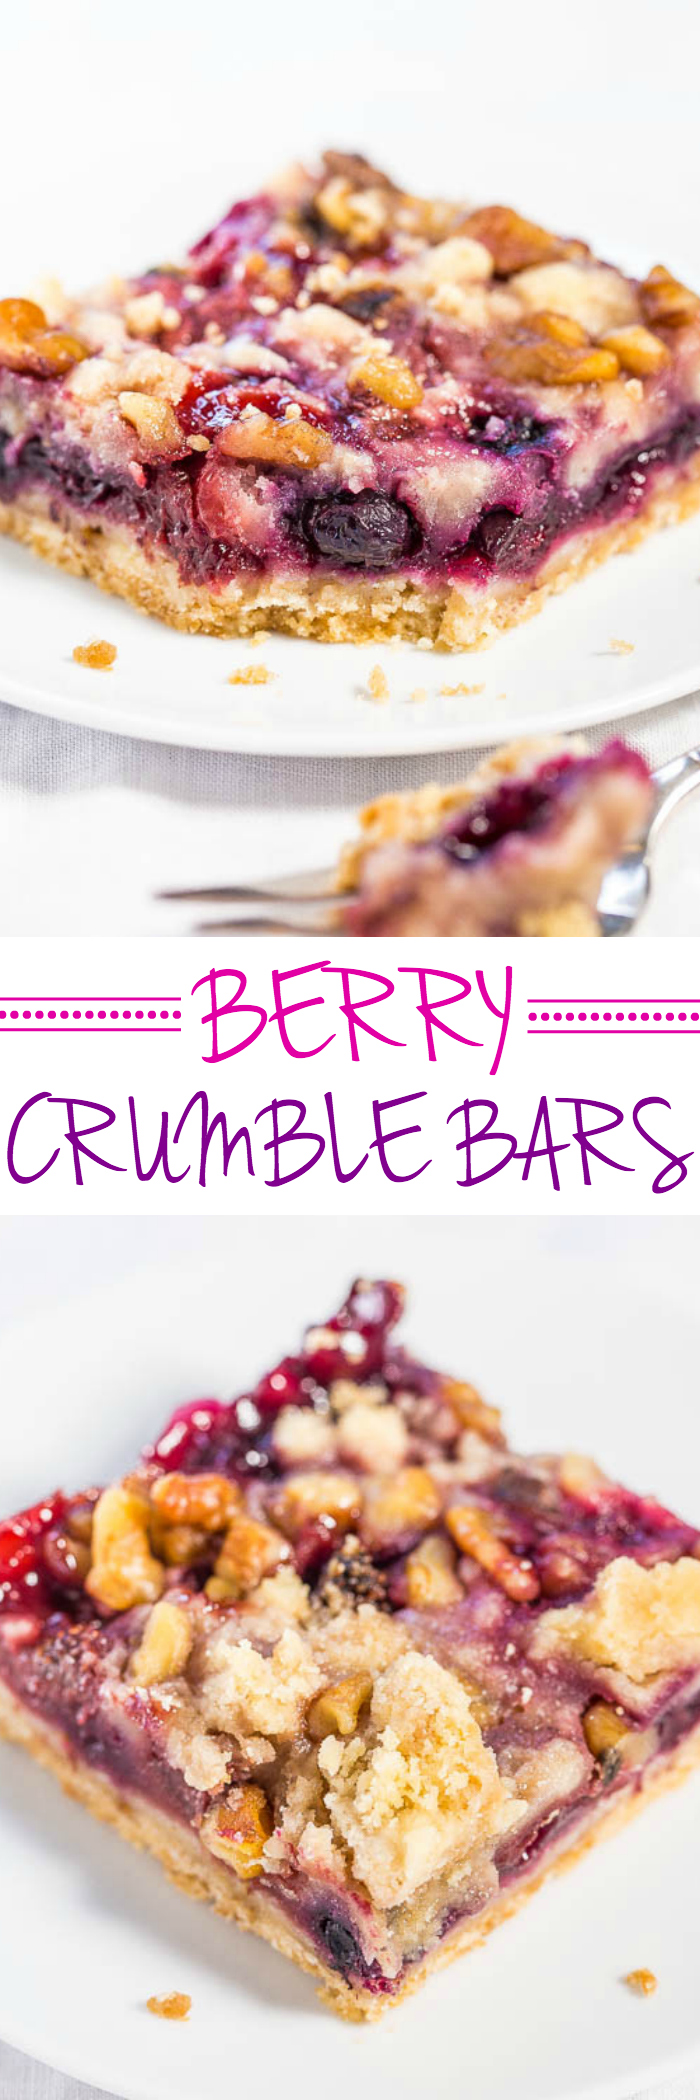 Berry Crumble Bars - Averie Cooks #berrycrumble Berry Crumble Bars - Averie Cooks